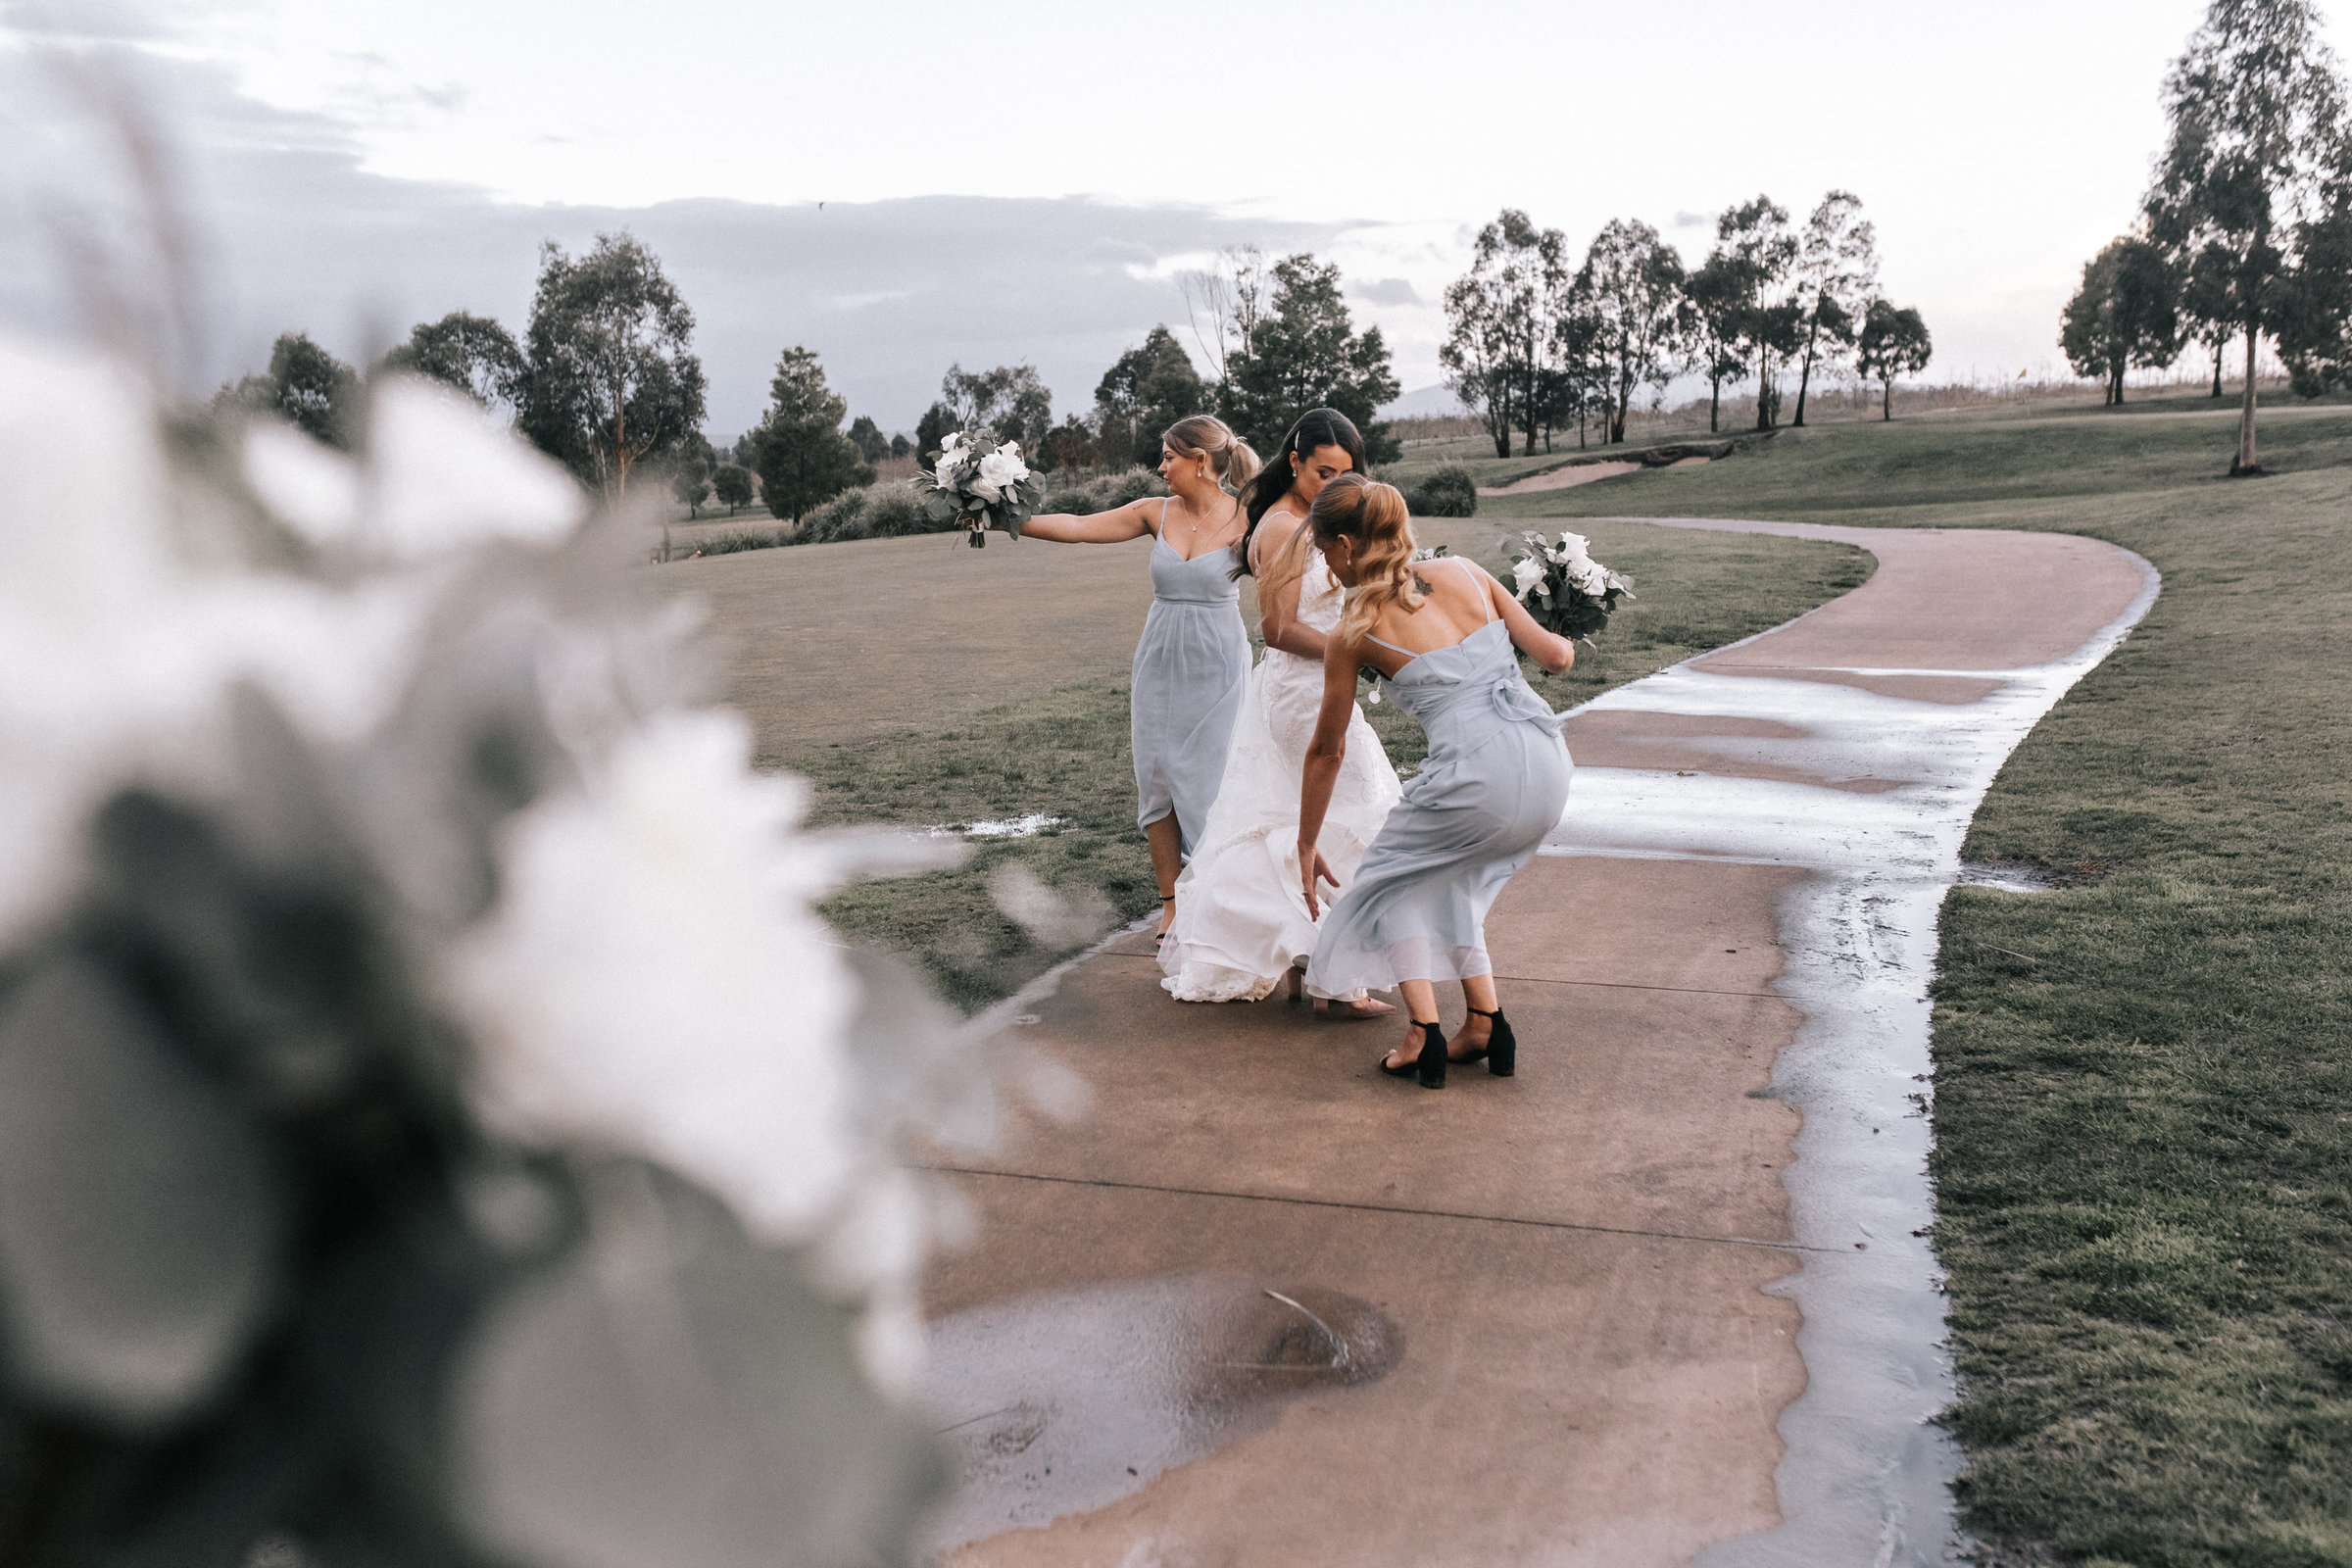 Bridal Party with Bridal Gown Melbourne Wedding Photograph